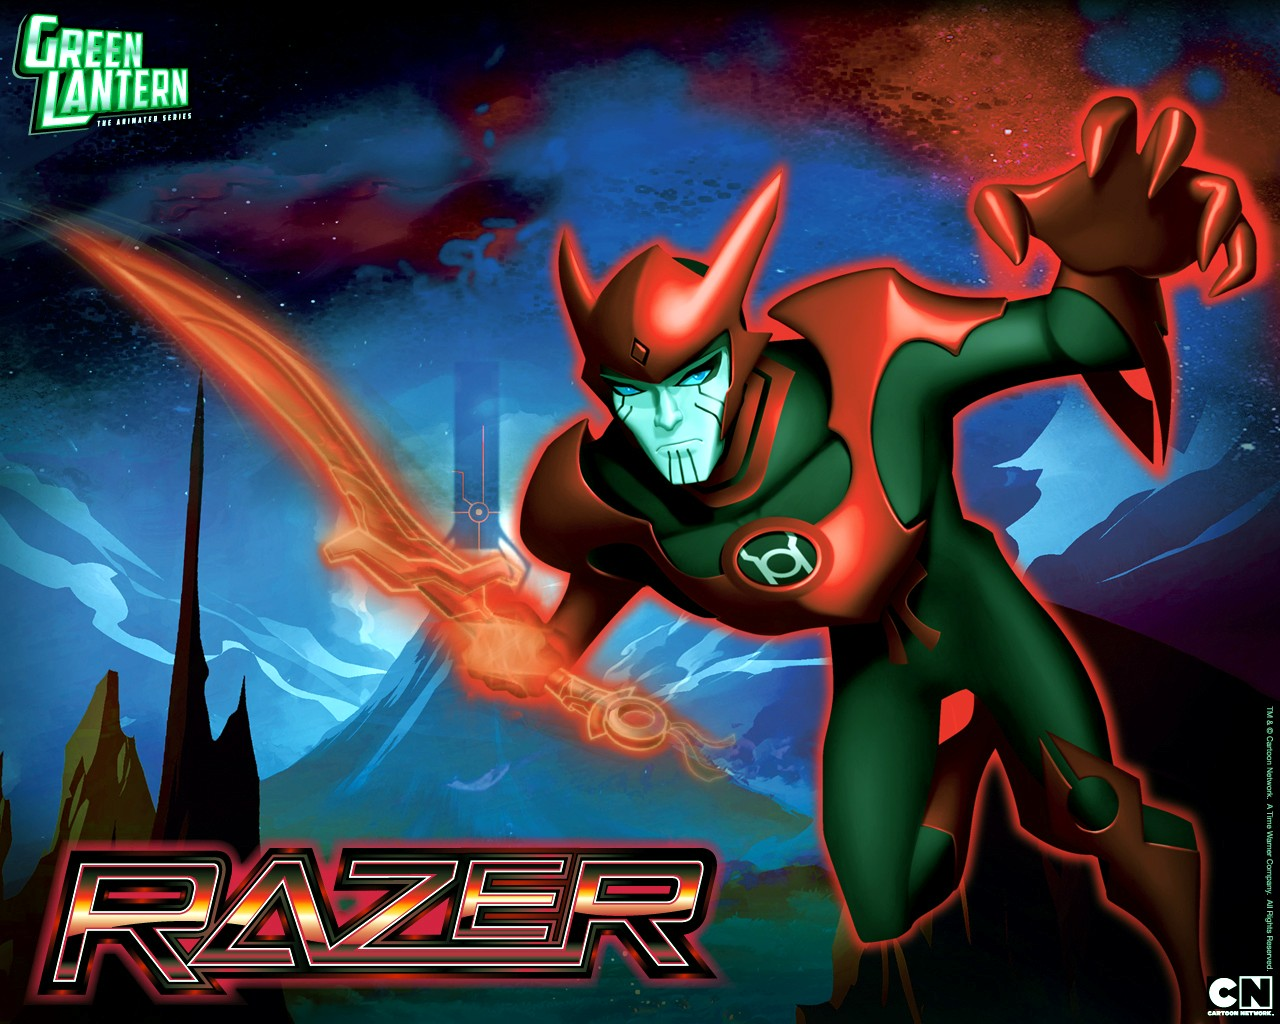 Green Lantern Animated Series - Razer